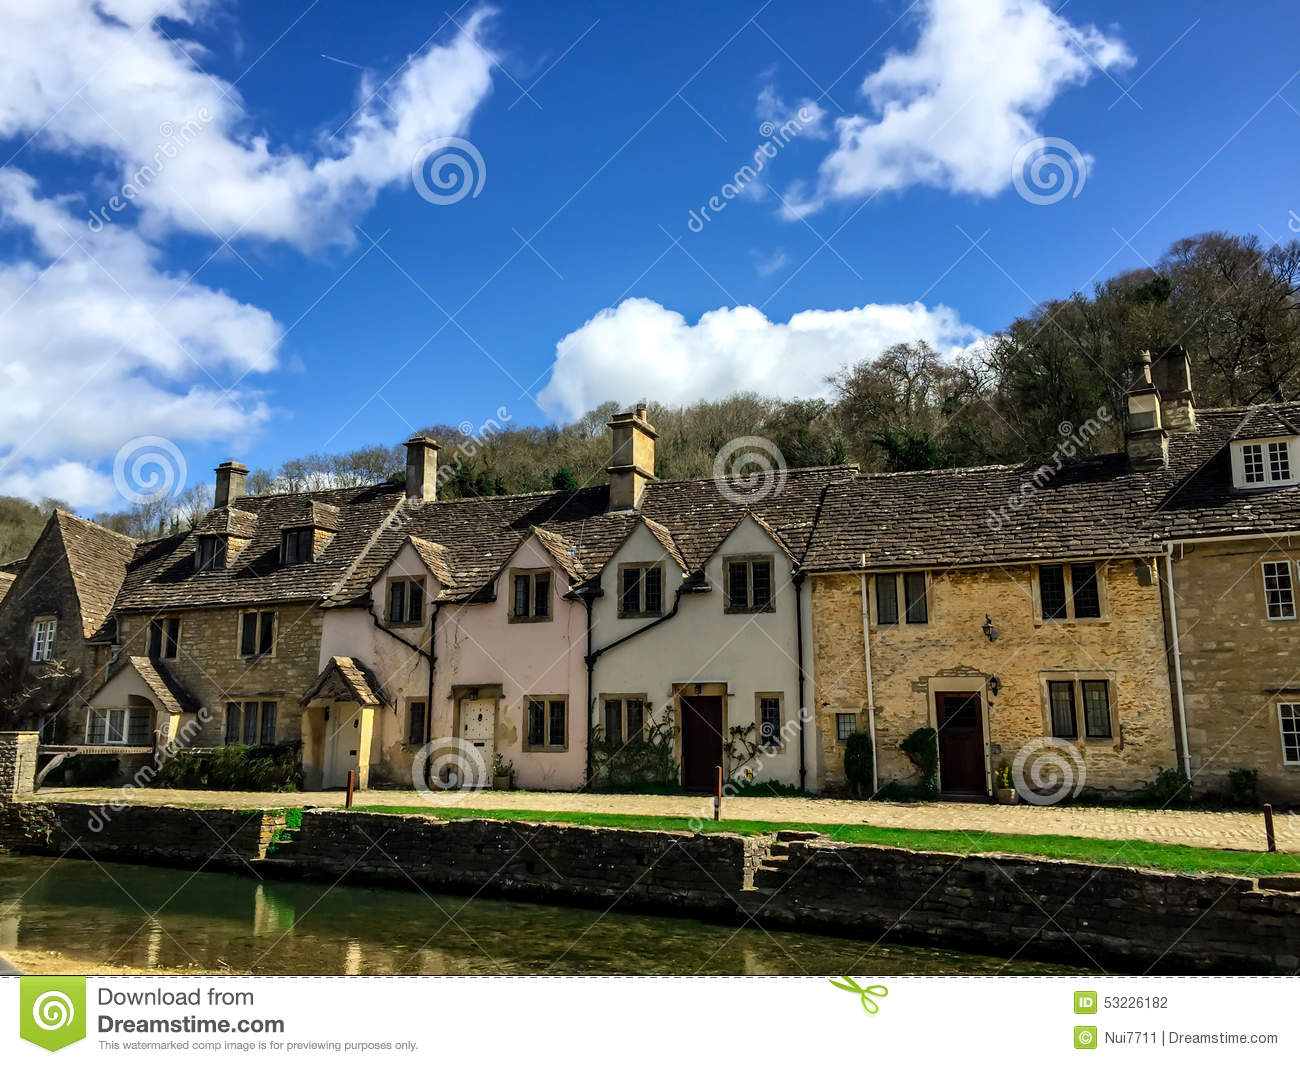 Old Houses In Combe Castle Village, UK Stock Photo - Image